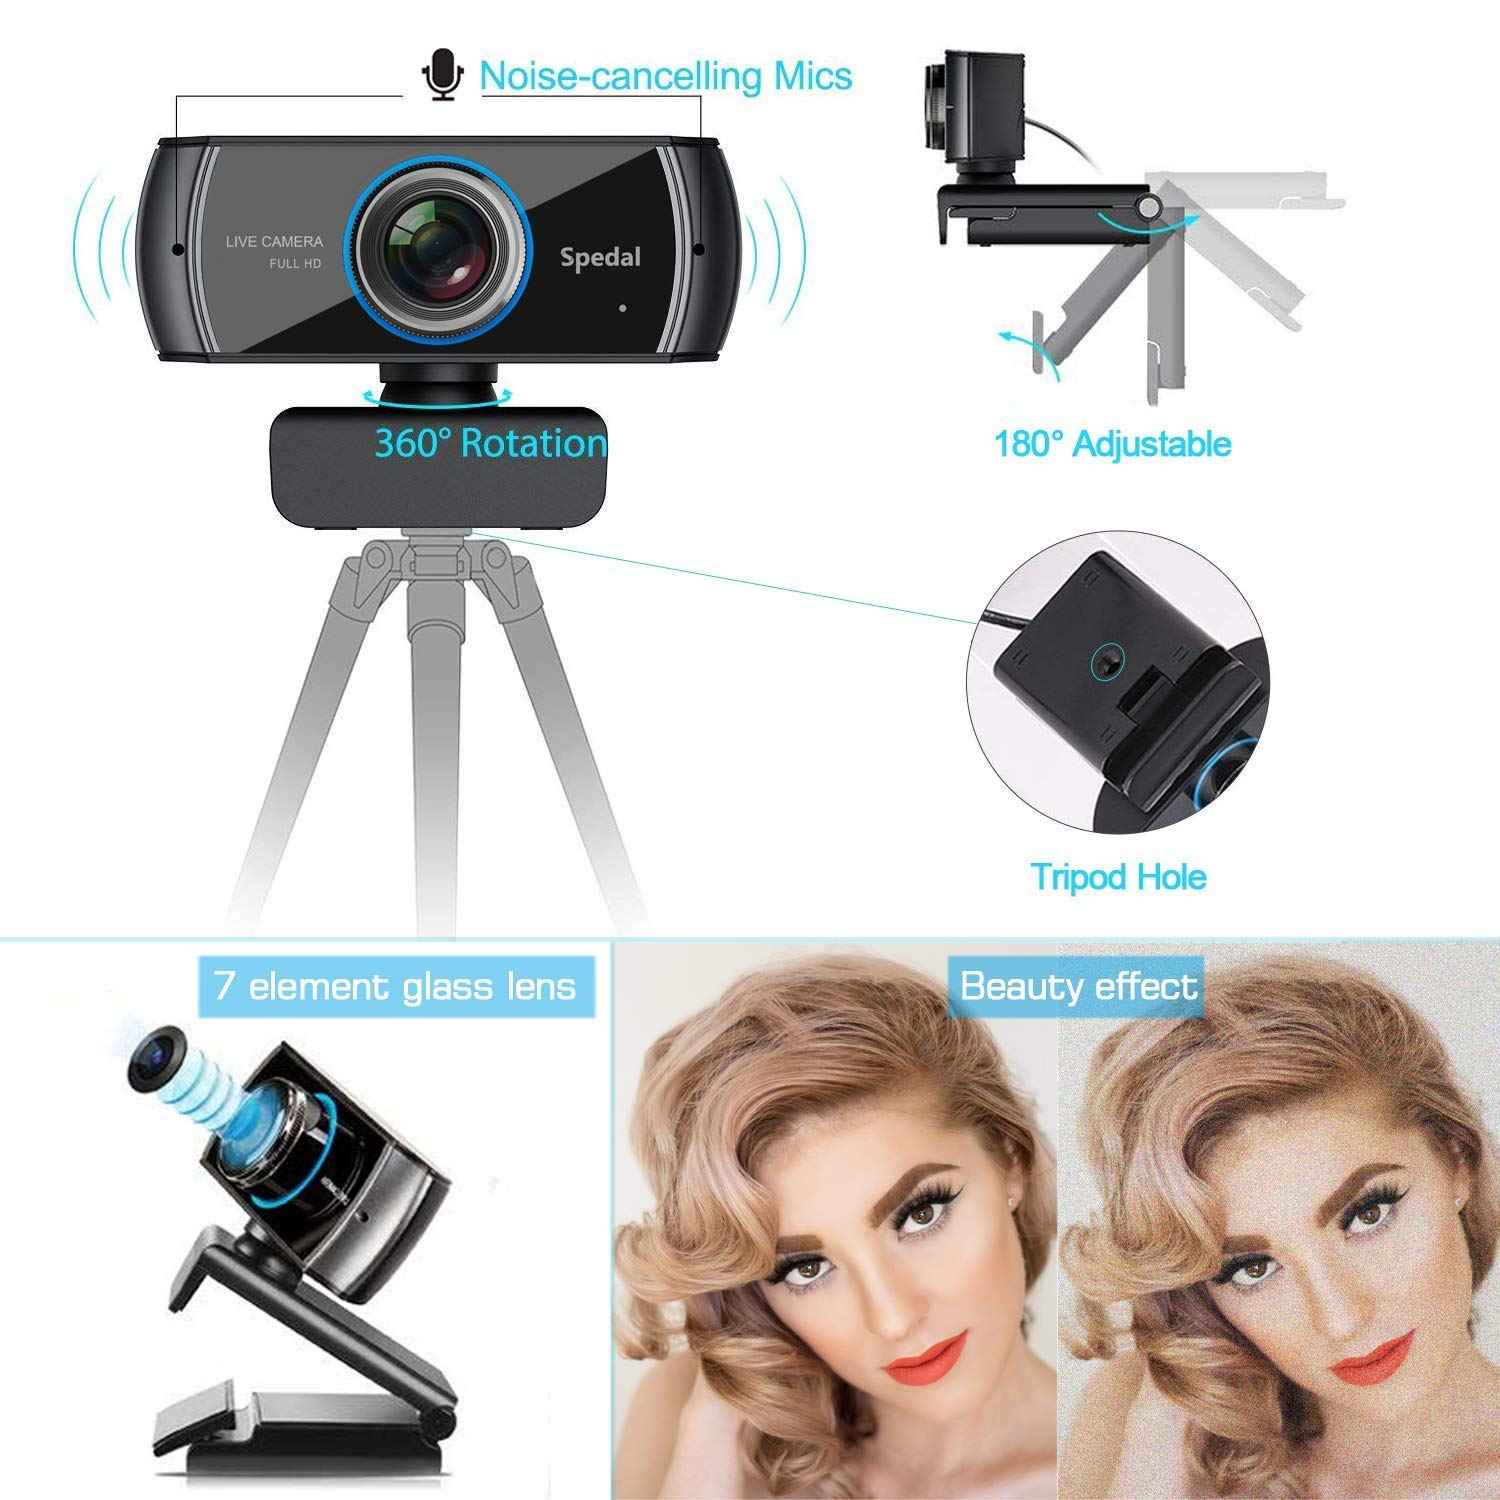 Spedal Full HD Webcam 1536p, Beauty Live Streaming Webcam, Computer Laptop Camera for OBS XSplit Skype Facebook, Compatible for Mac OS Windows 10/8/7 by Spedal (Image #2)